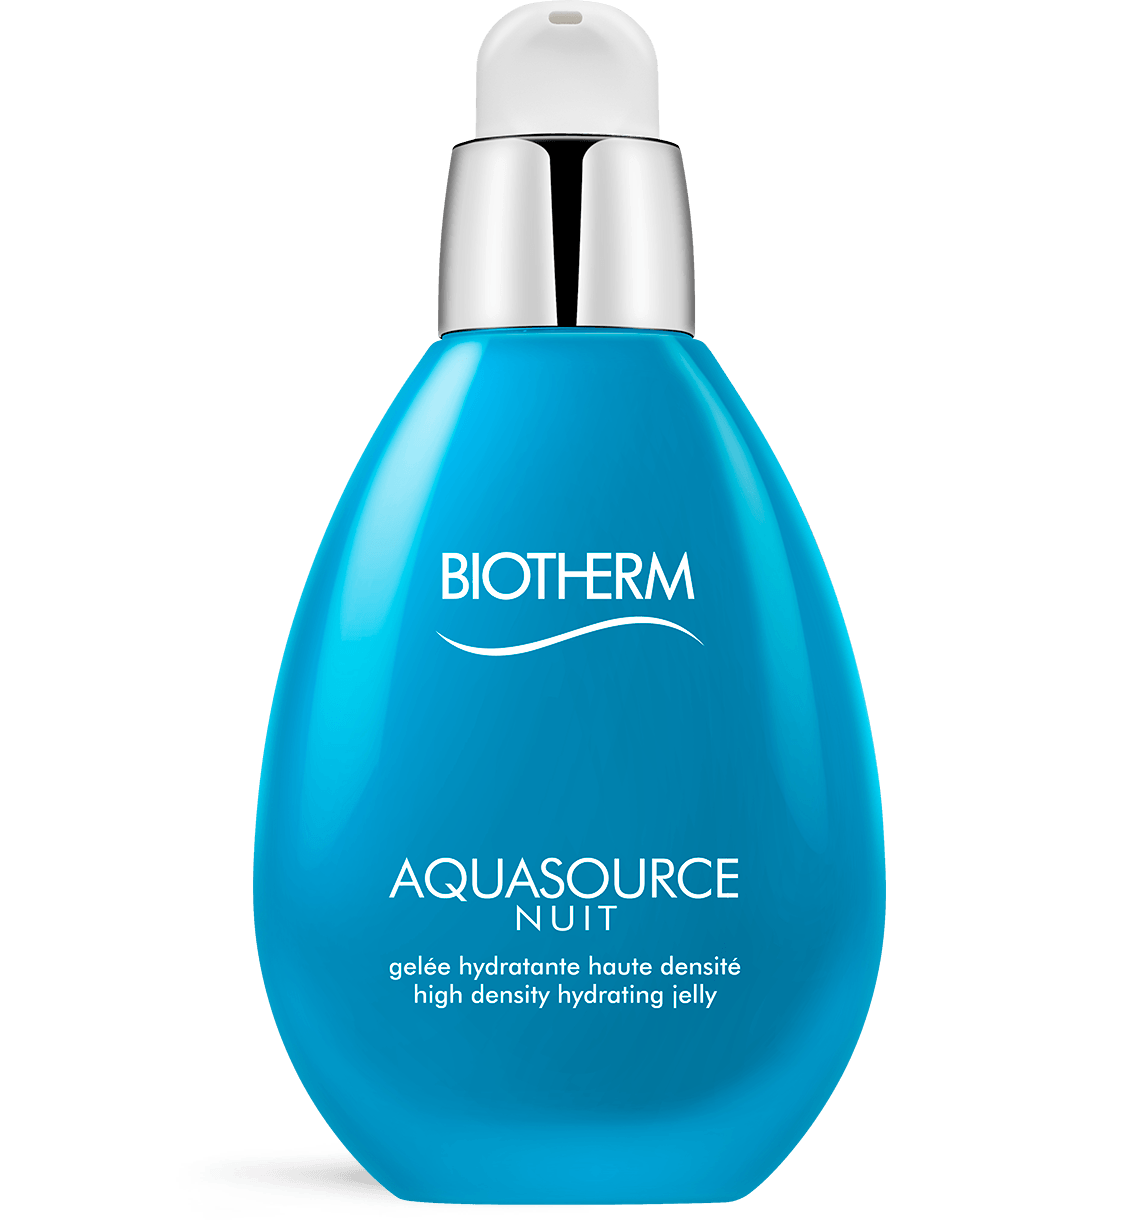 biotherm aquasource night